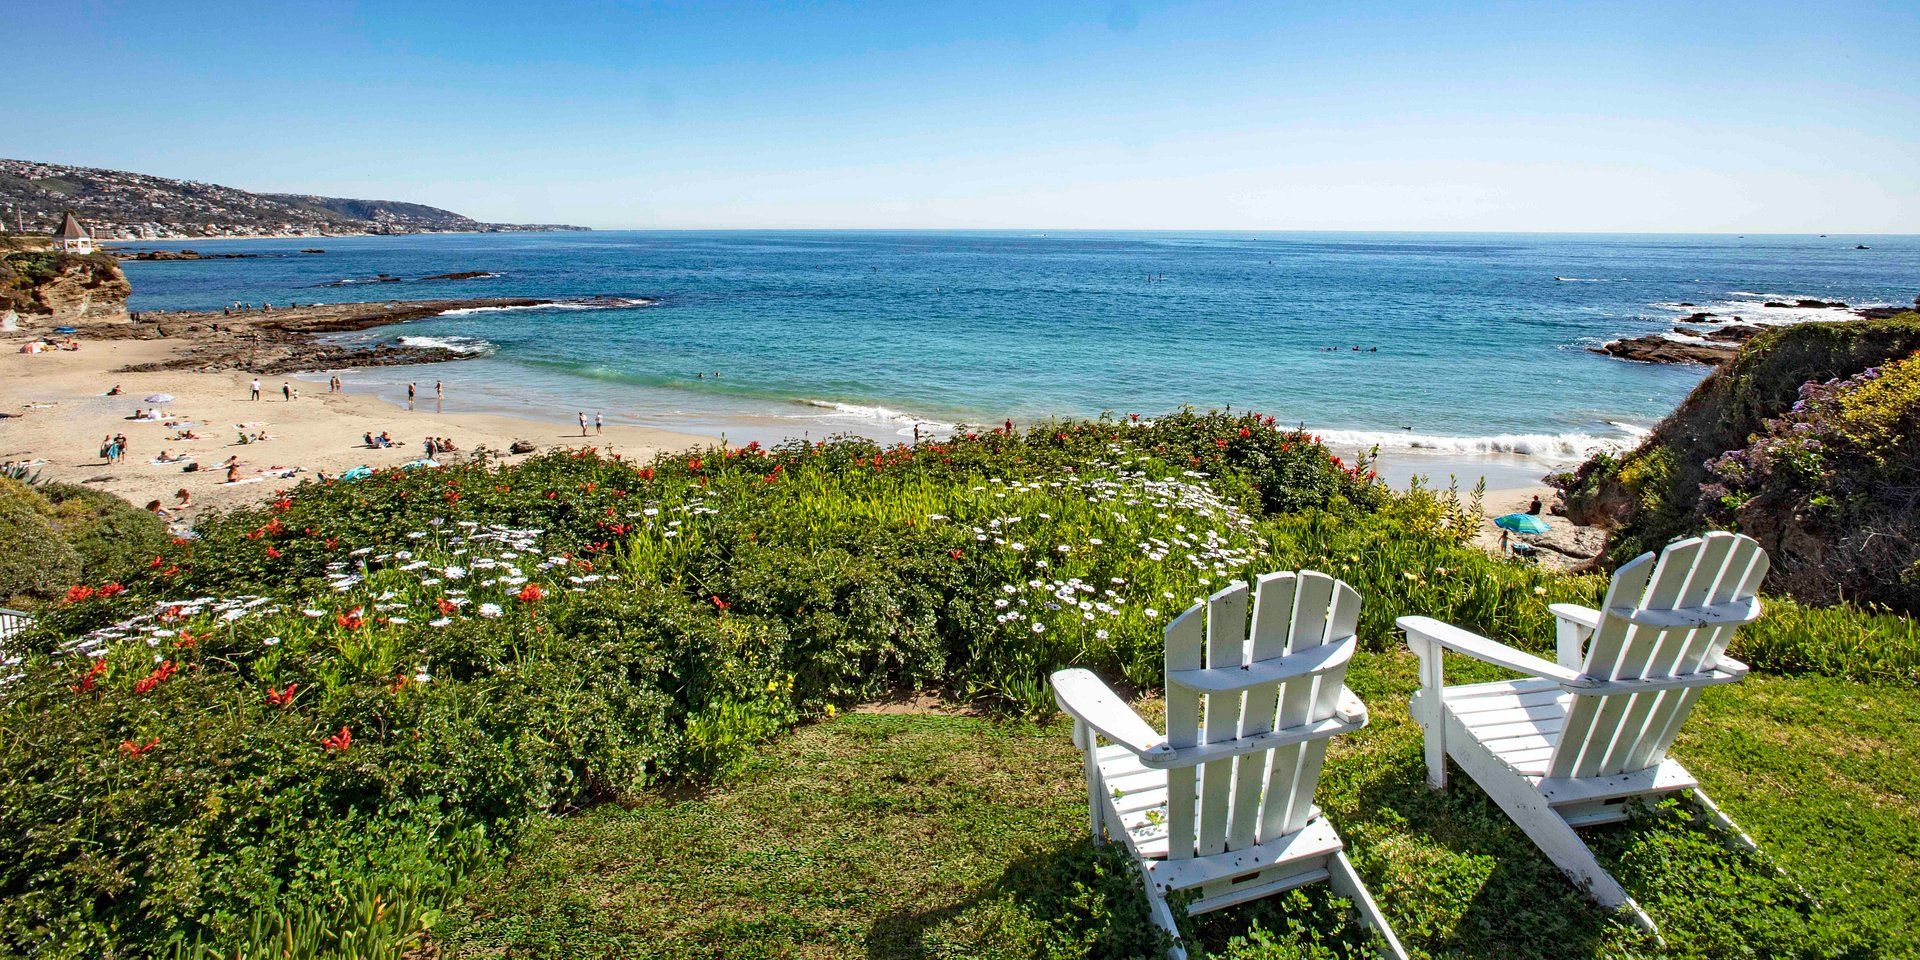 Coldwell Banker Residential Brokerage Lists Oceanfront Laguna Beach Property for $8.99 Million